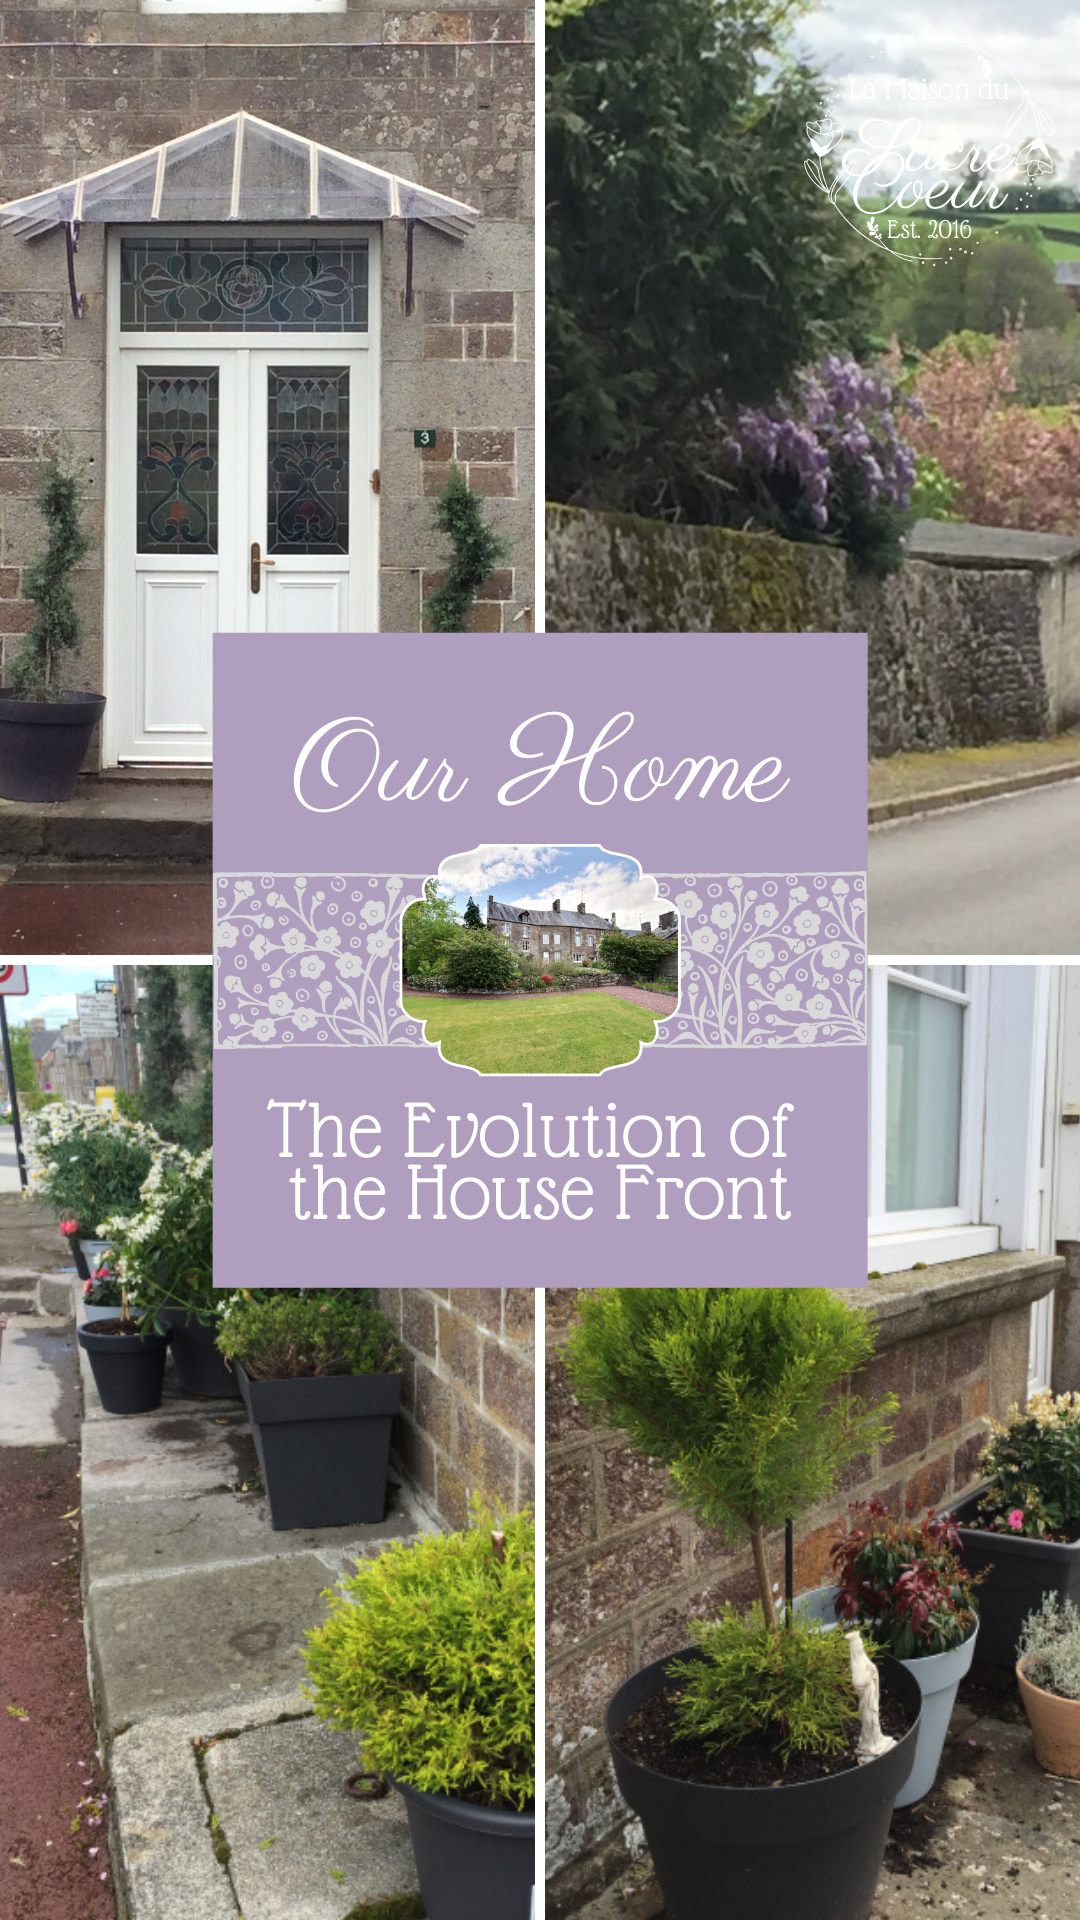 The Evolution of the House Front